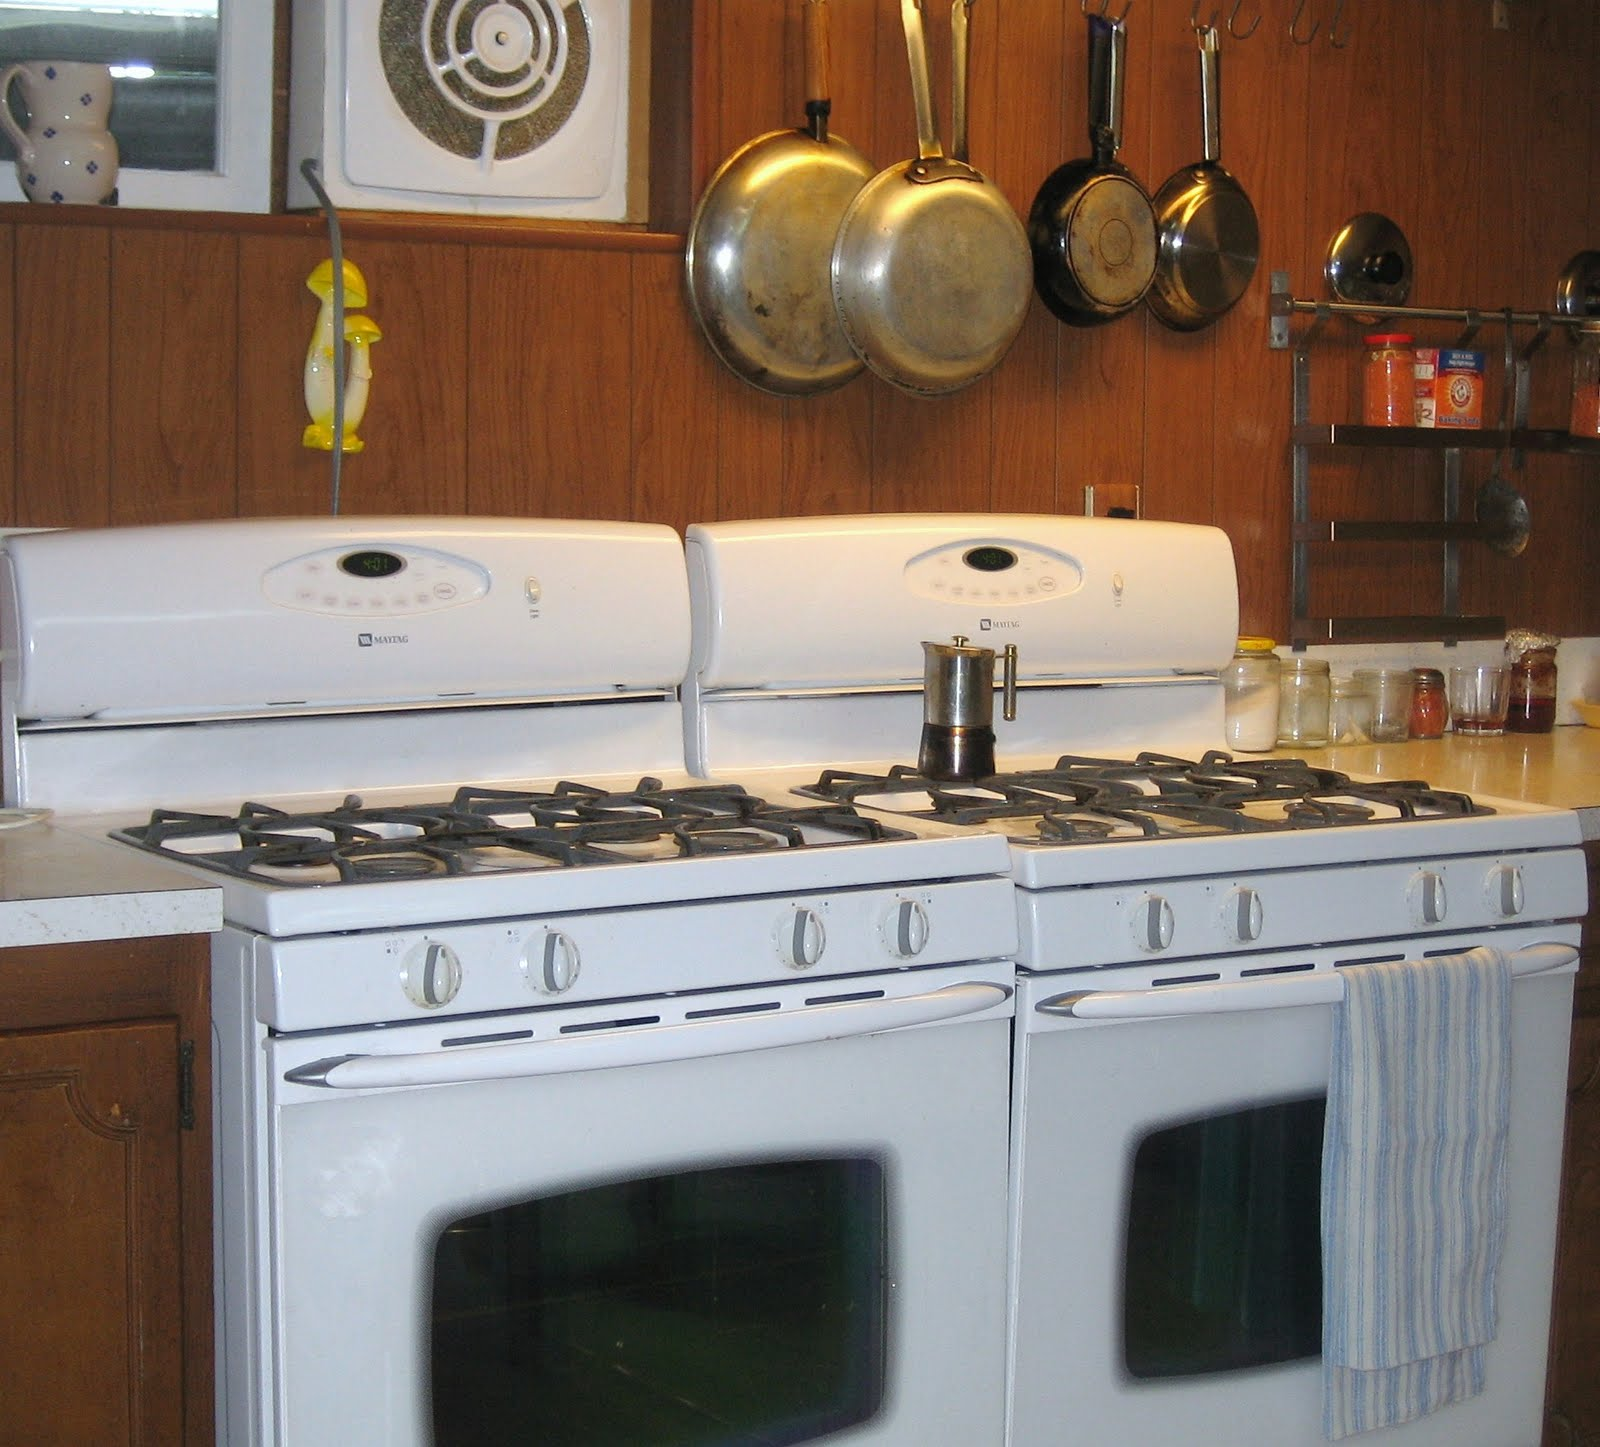 LA CASA E IL GIARDINO: Does A $5,000 Stove Make The Cook?